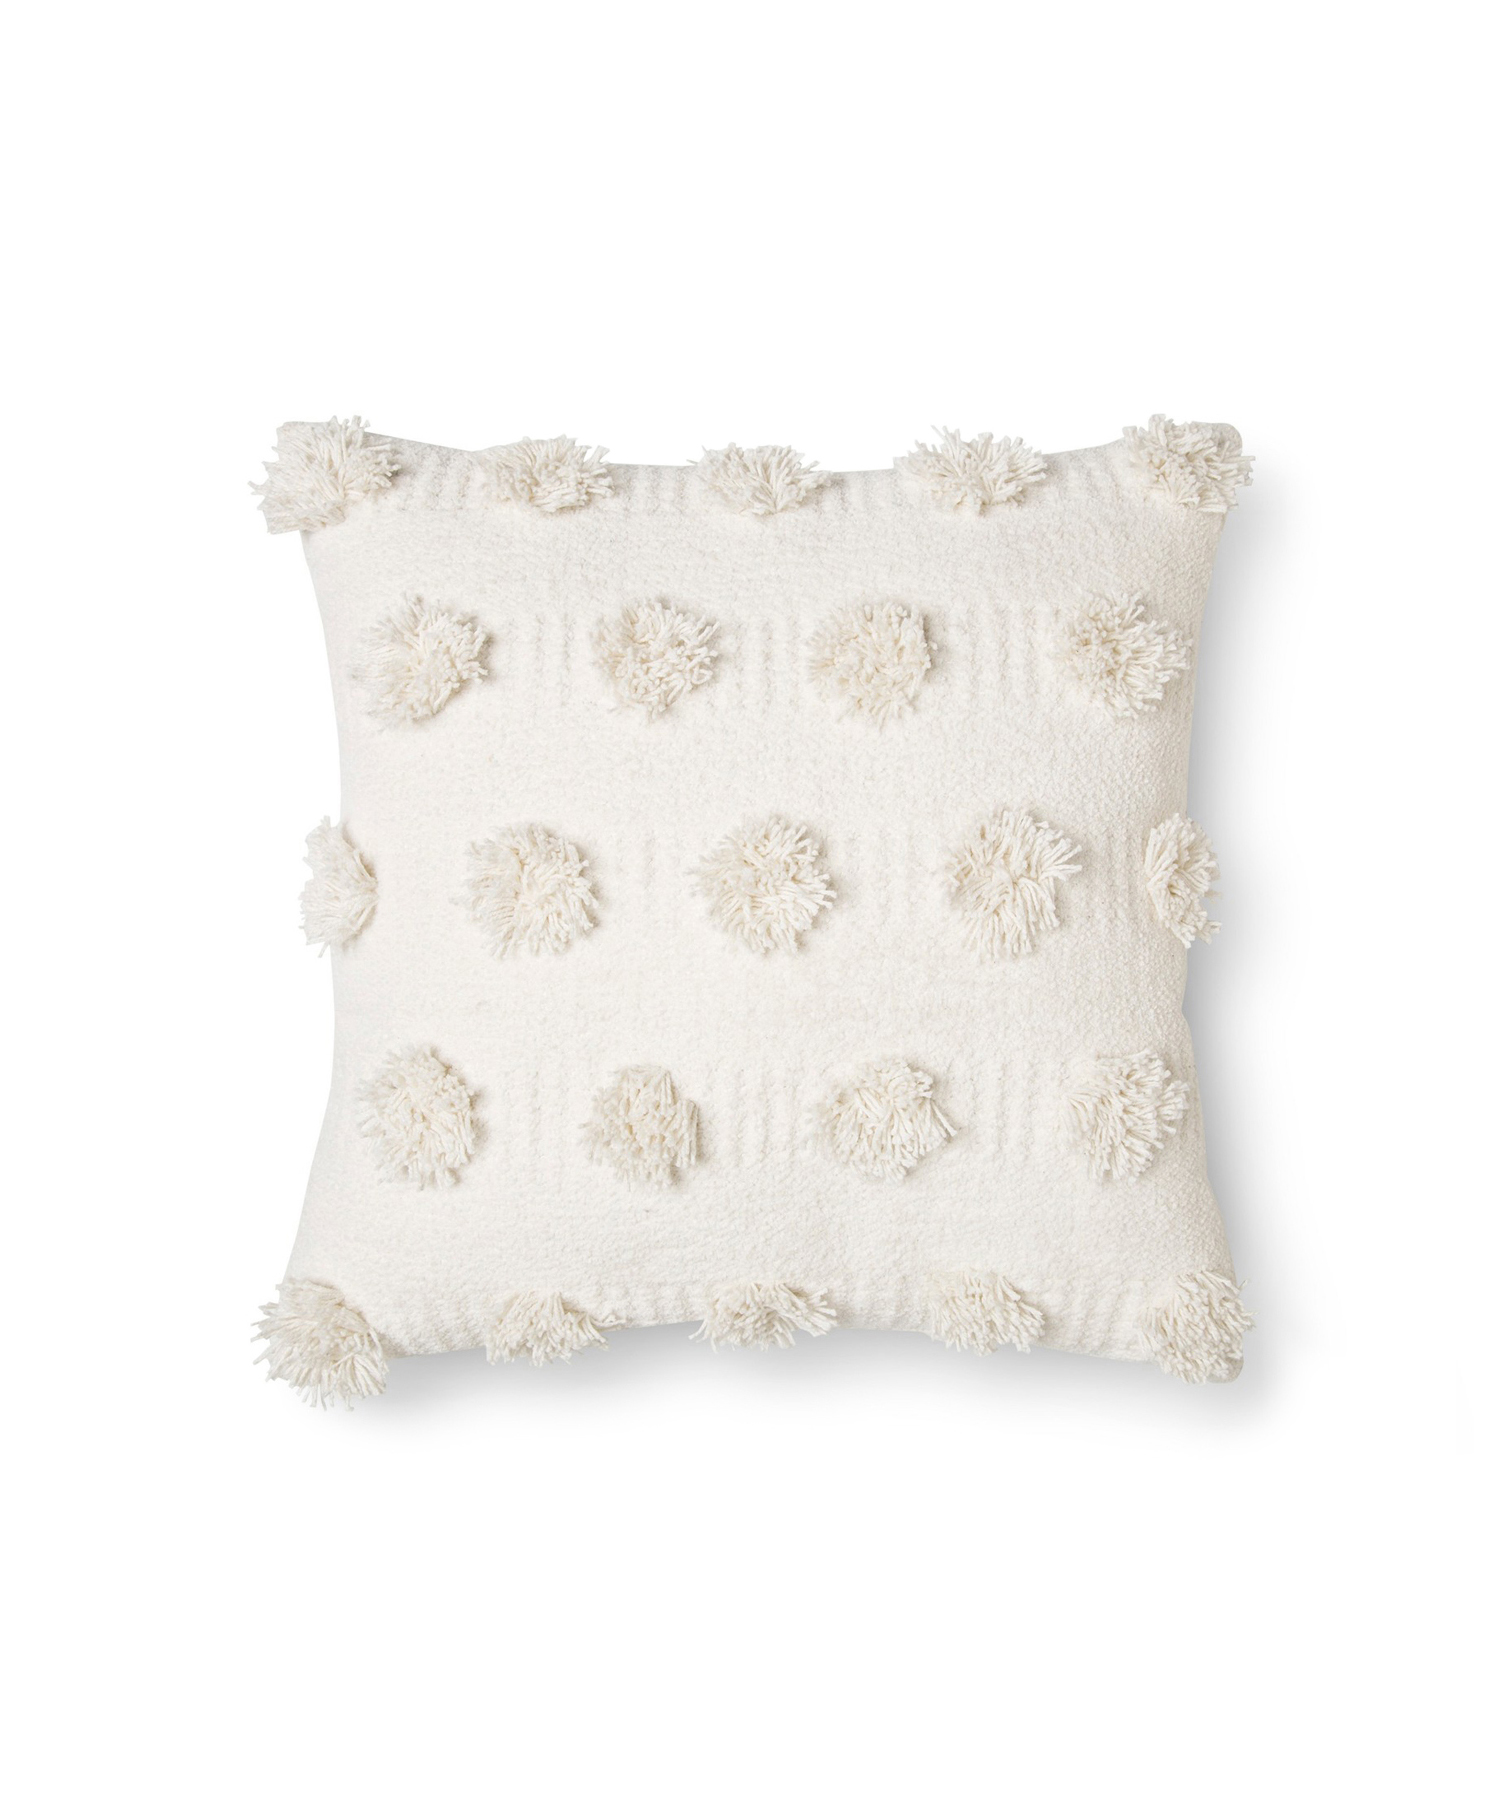 Cream Pop Dot Pillow